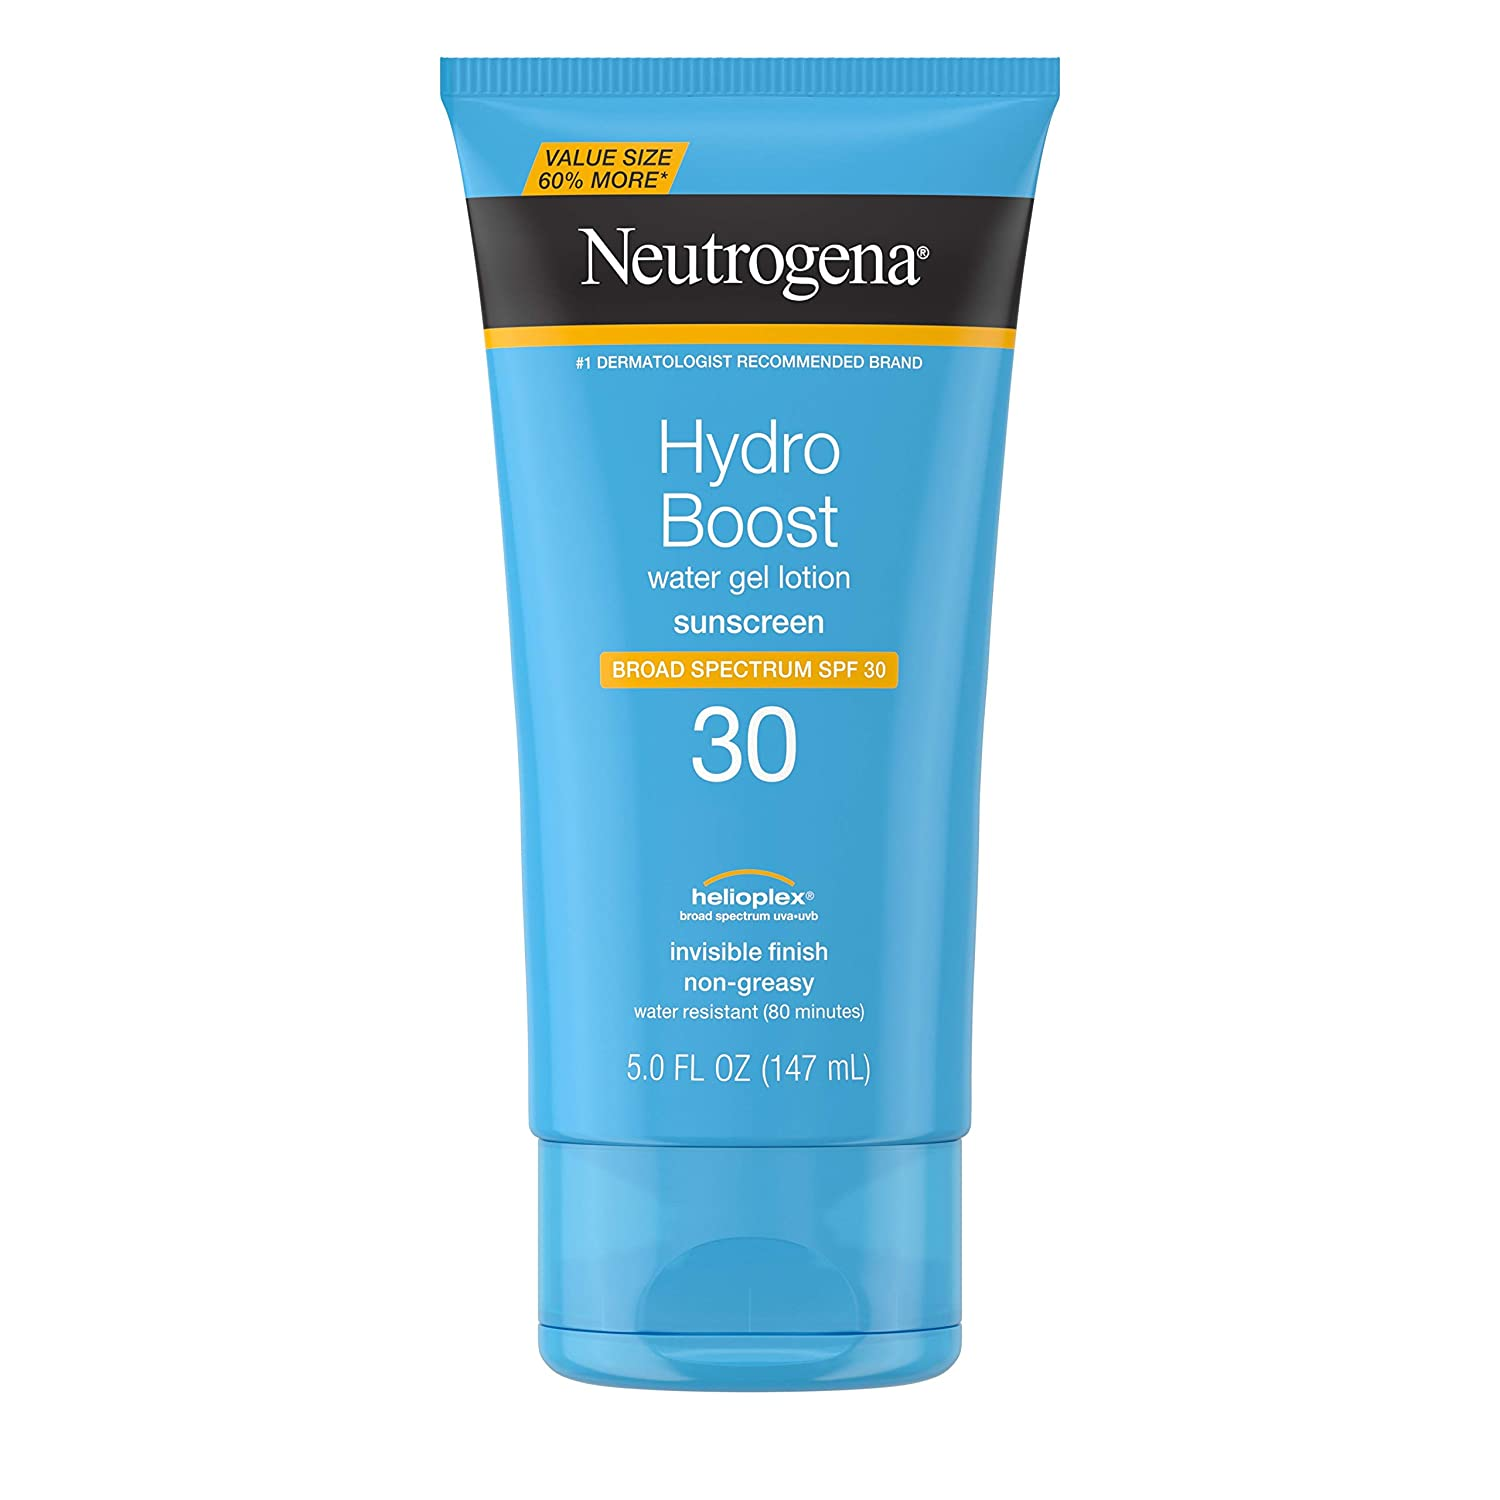 Neutrogena Hydro Boost Water Gel Non-Greasy Moisturizing Sunscreen Lotion with Broad Spectrum SPF 30, Water-Resistant Hydrating Sunscreen Lotion, 5 fl. Oz